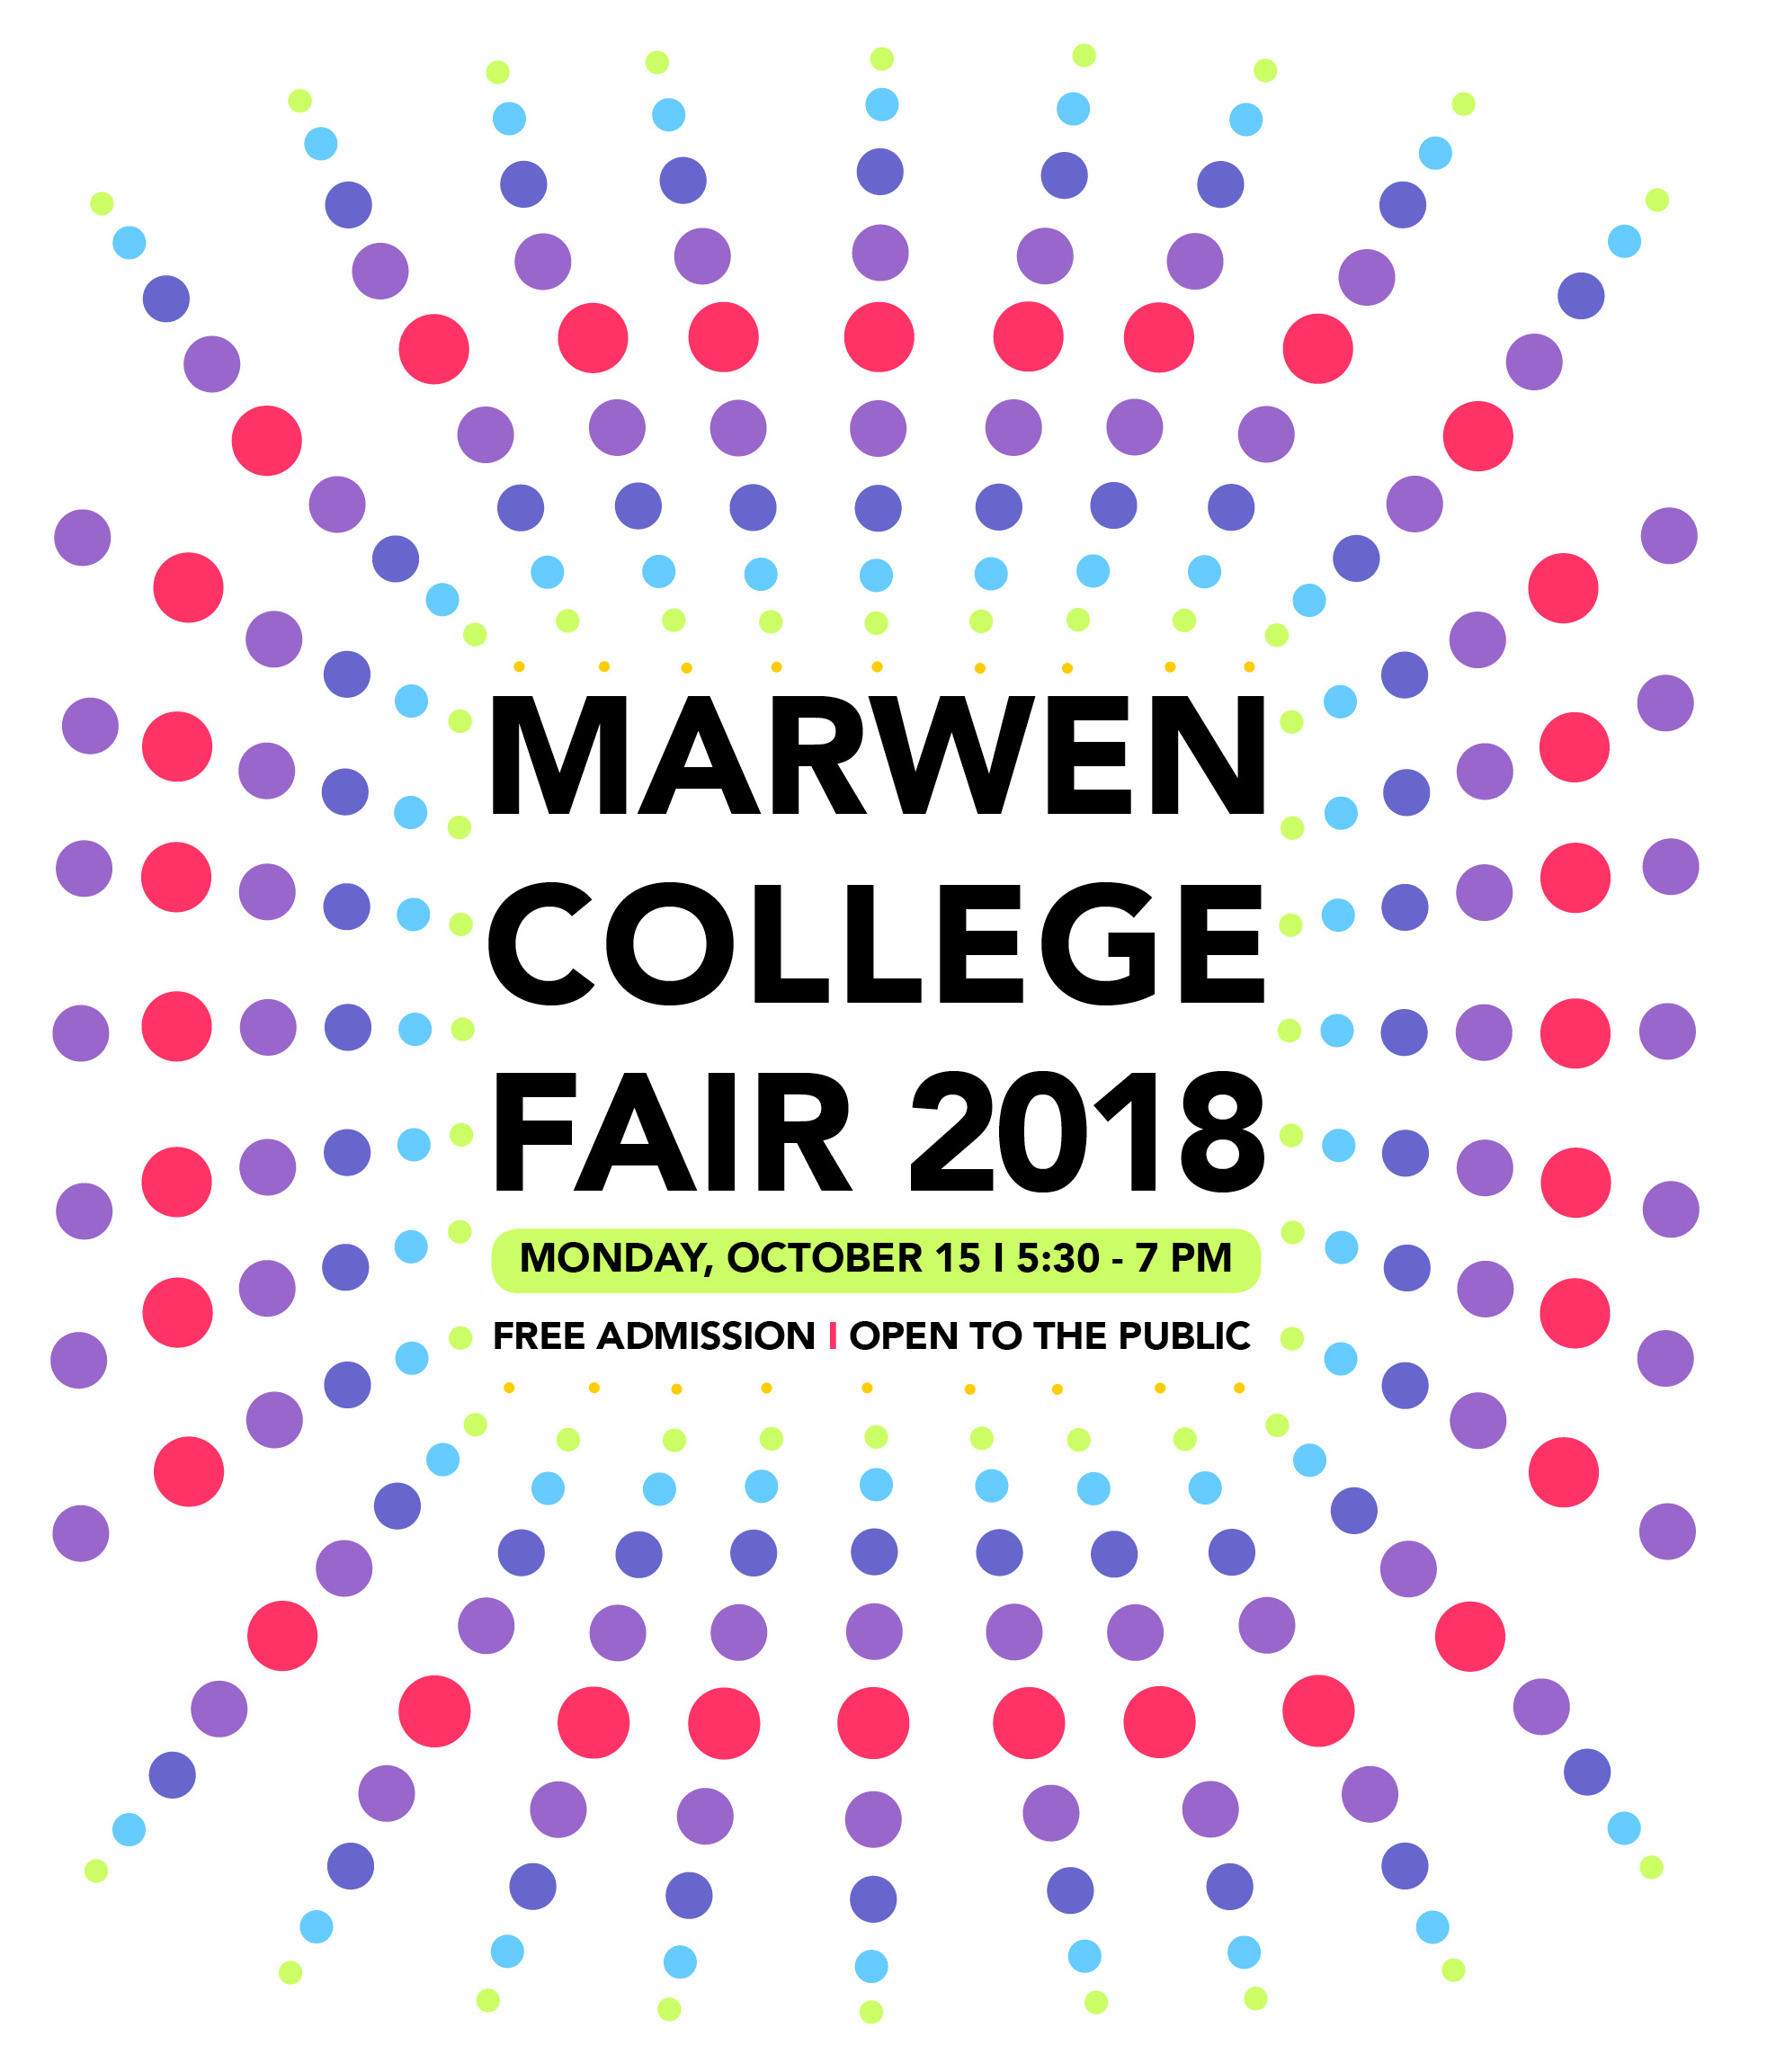 Marwen College Fair 2018